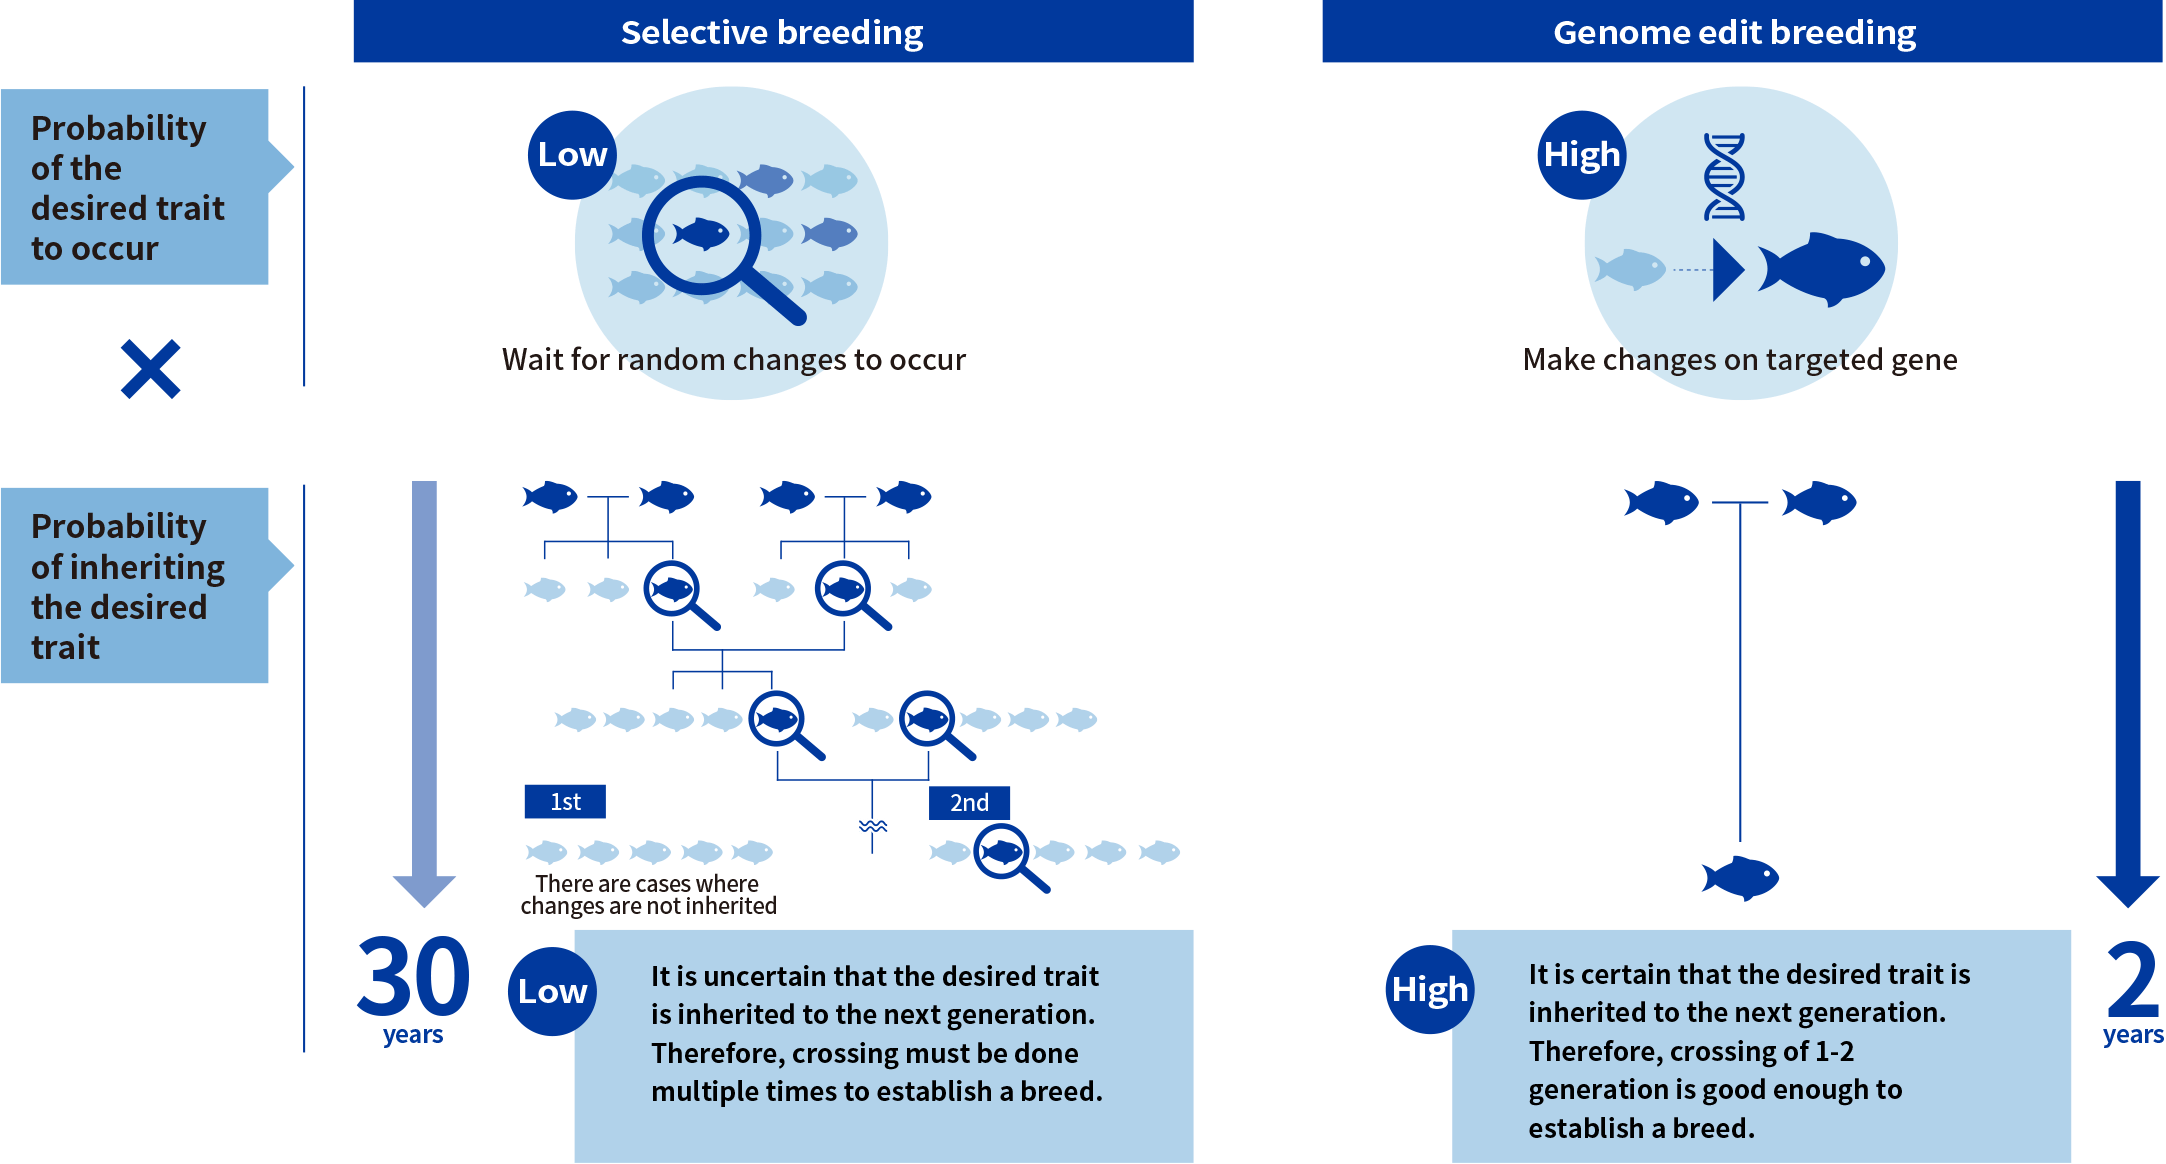 Selective breeding & Genome edit breeding